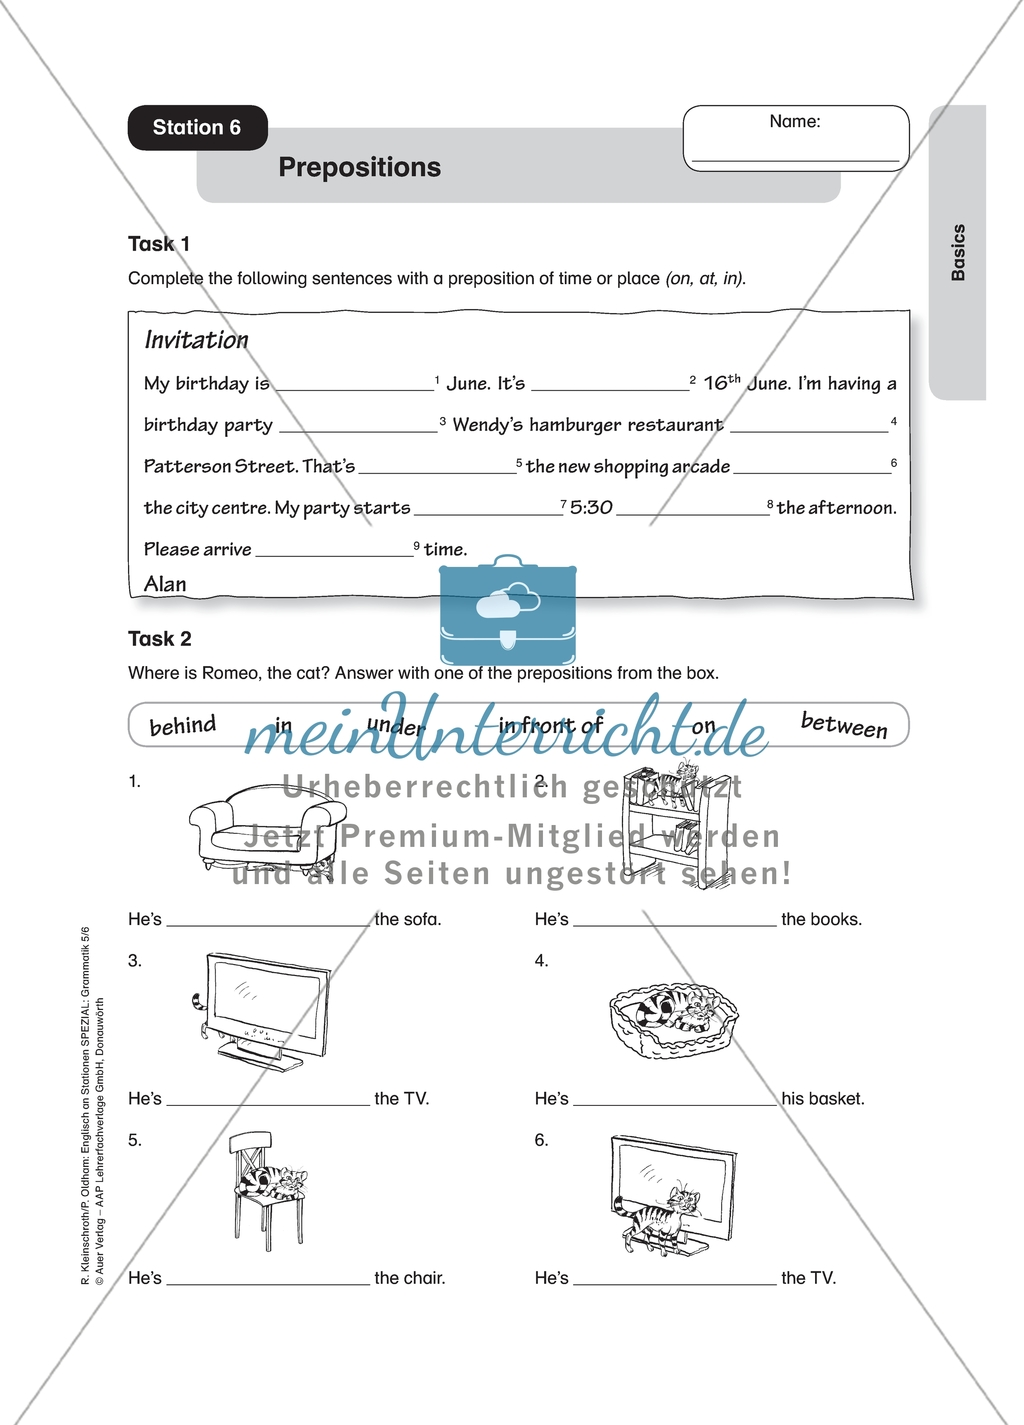 Prepositions Worksheet With Solution